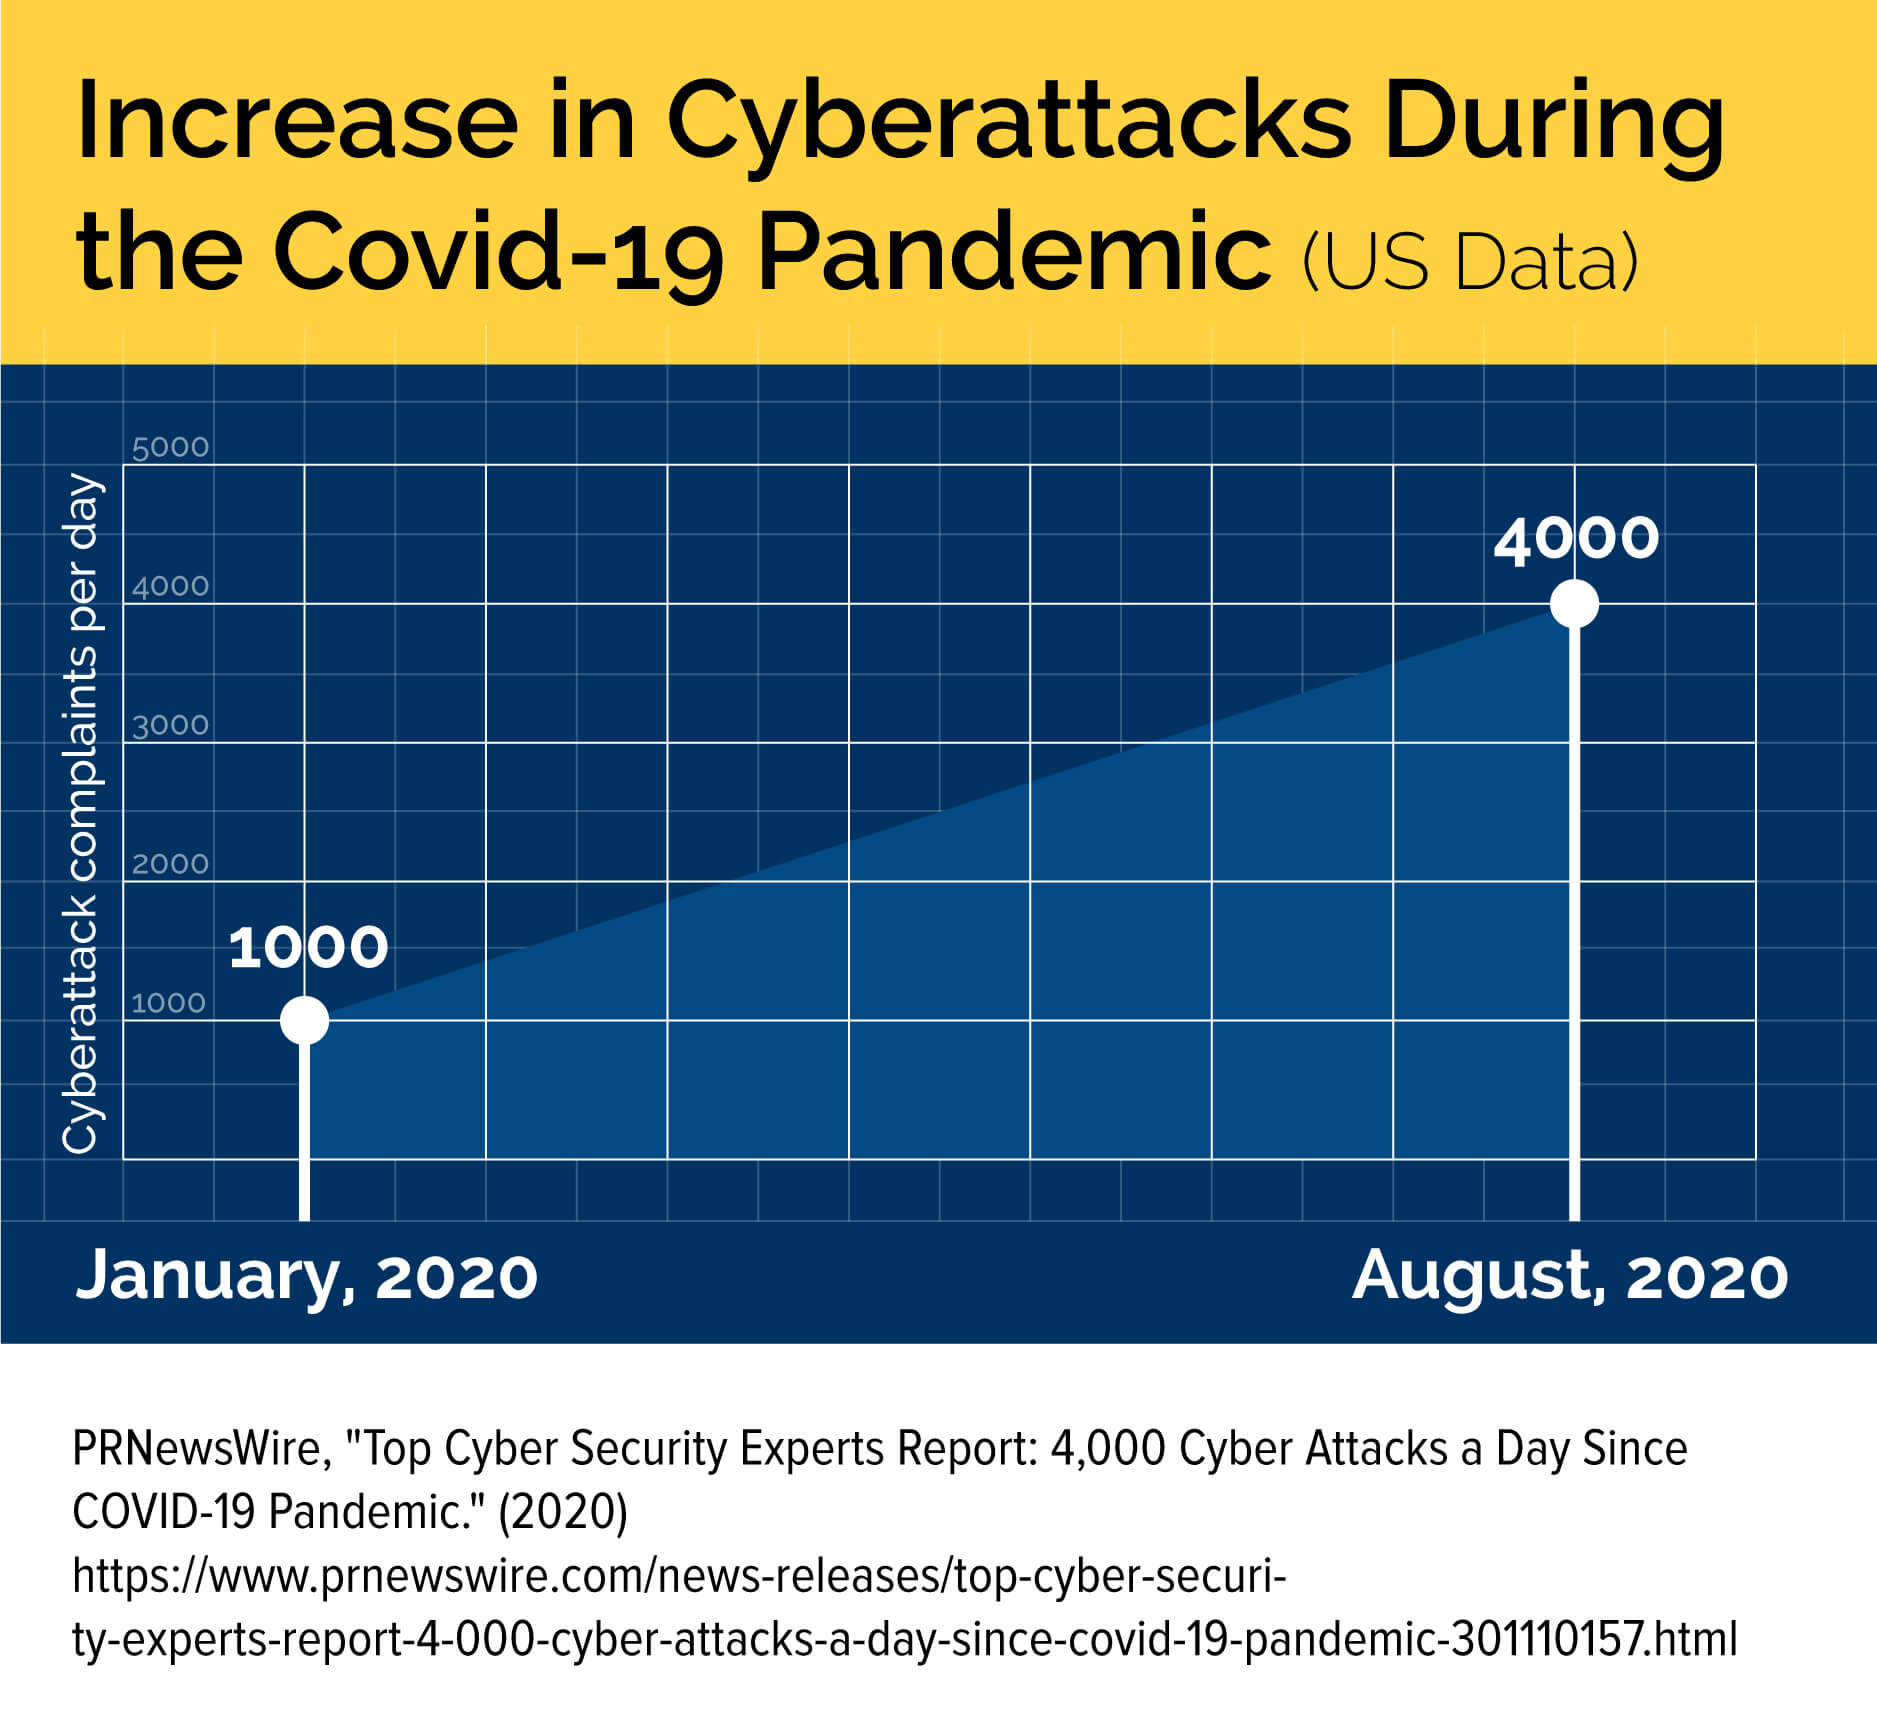 A chart showing the increase in cyberattacks during the COVID-19 pandemic.